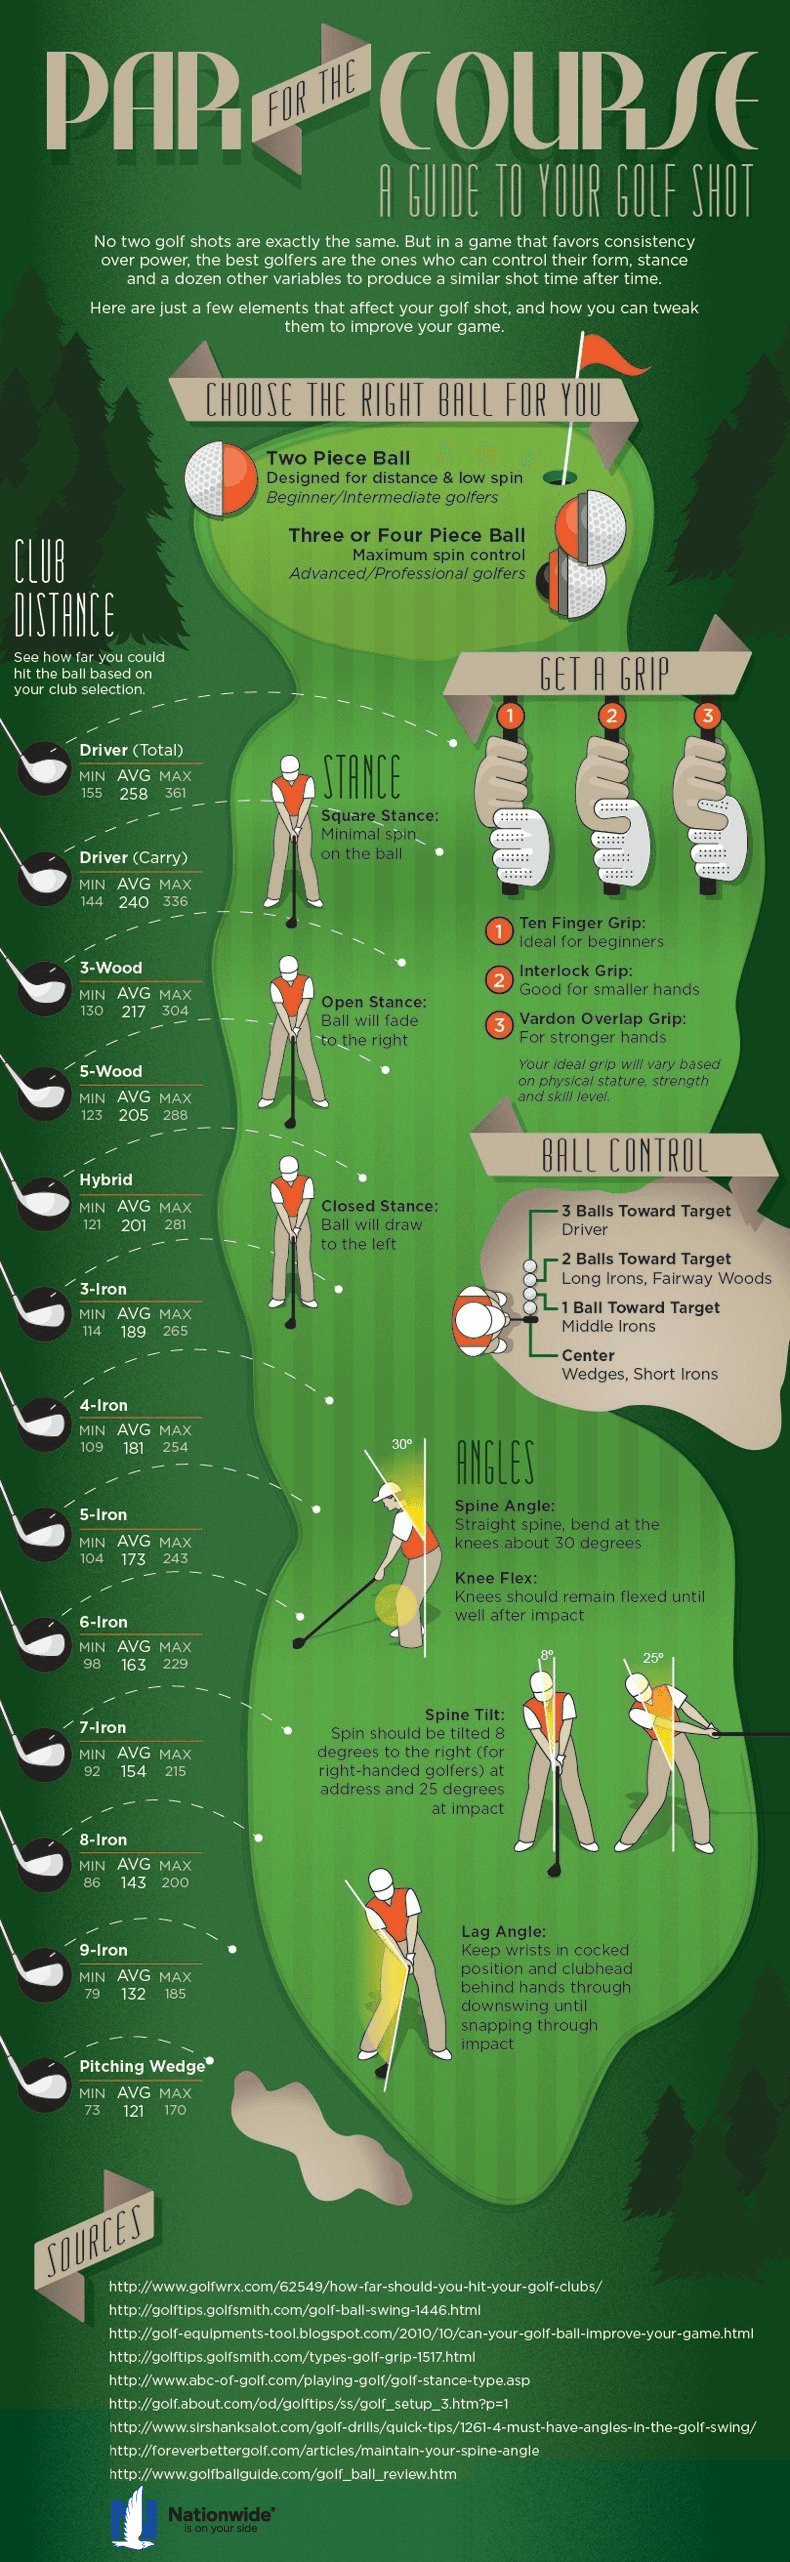 Improve Your Golf Swing: Golf Club Distances, Proper Grip & Stance [Infographic]